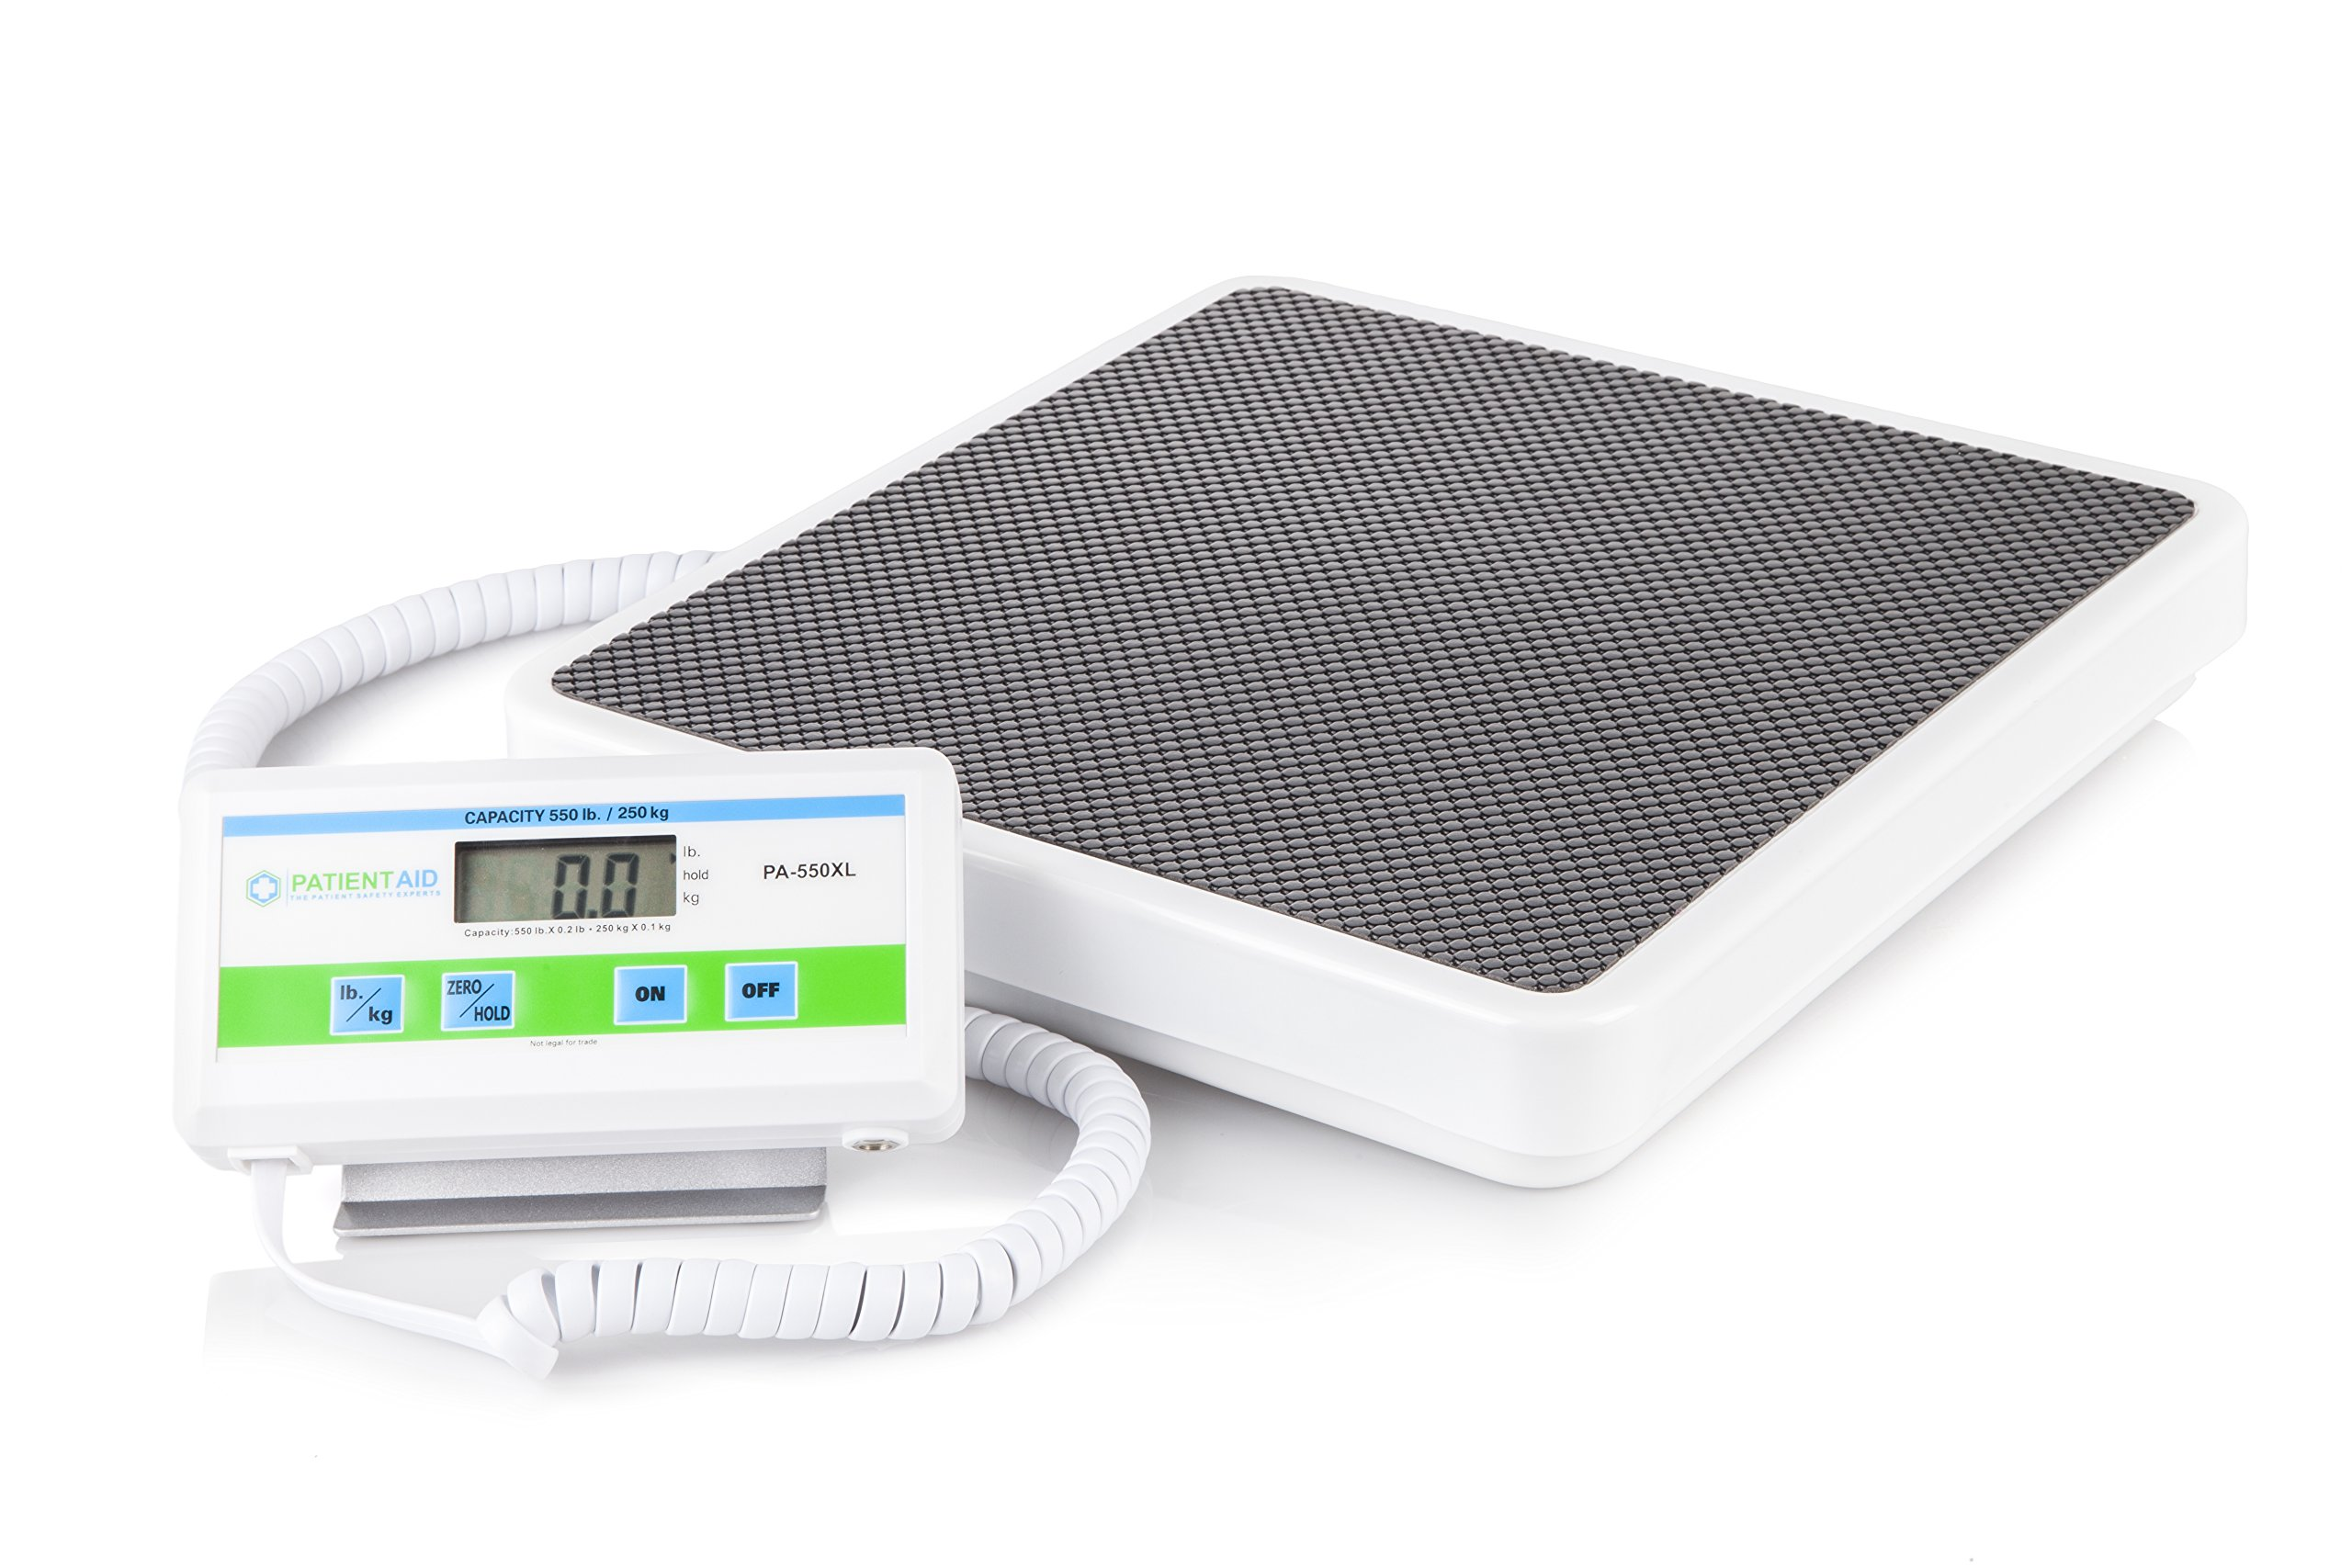 Medical Heavy Weight Floor Scale: Digital Easy Read and High Capacity Health, Fitness and Physician Portable Scale with Battery and AC Adapter - Pound and Kilogram Settings - 550 lb / 249 Kg Limit by Patient Aid